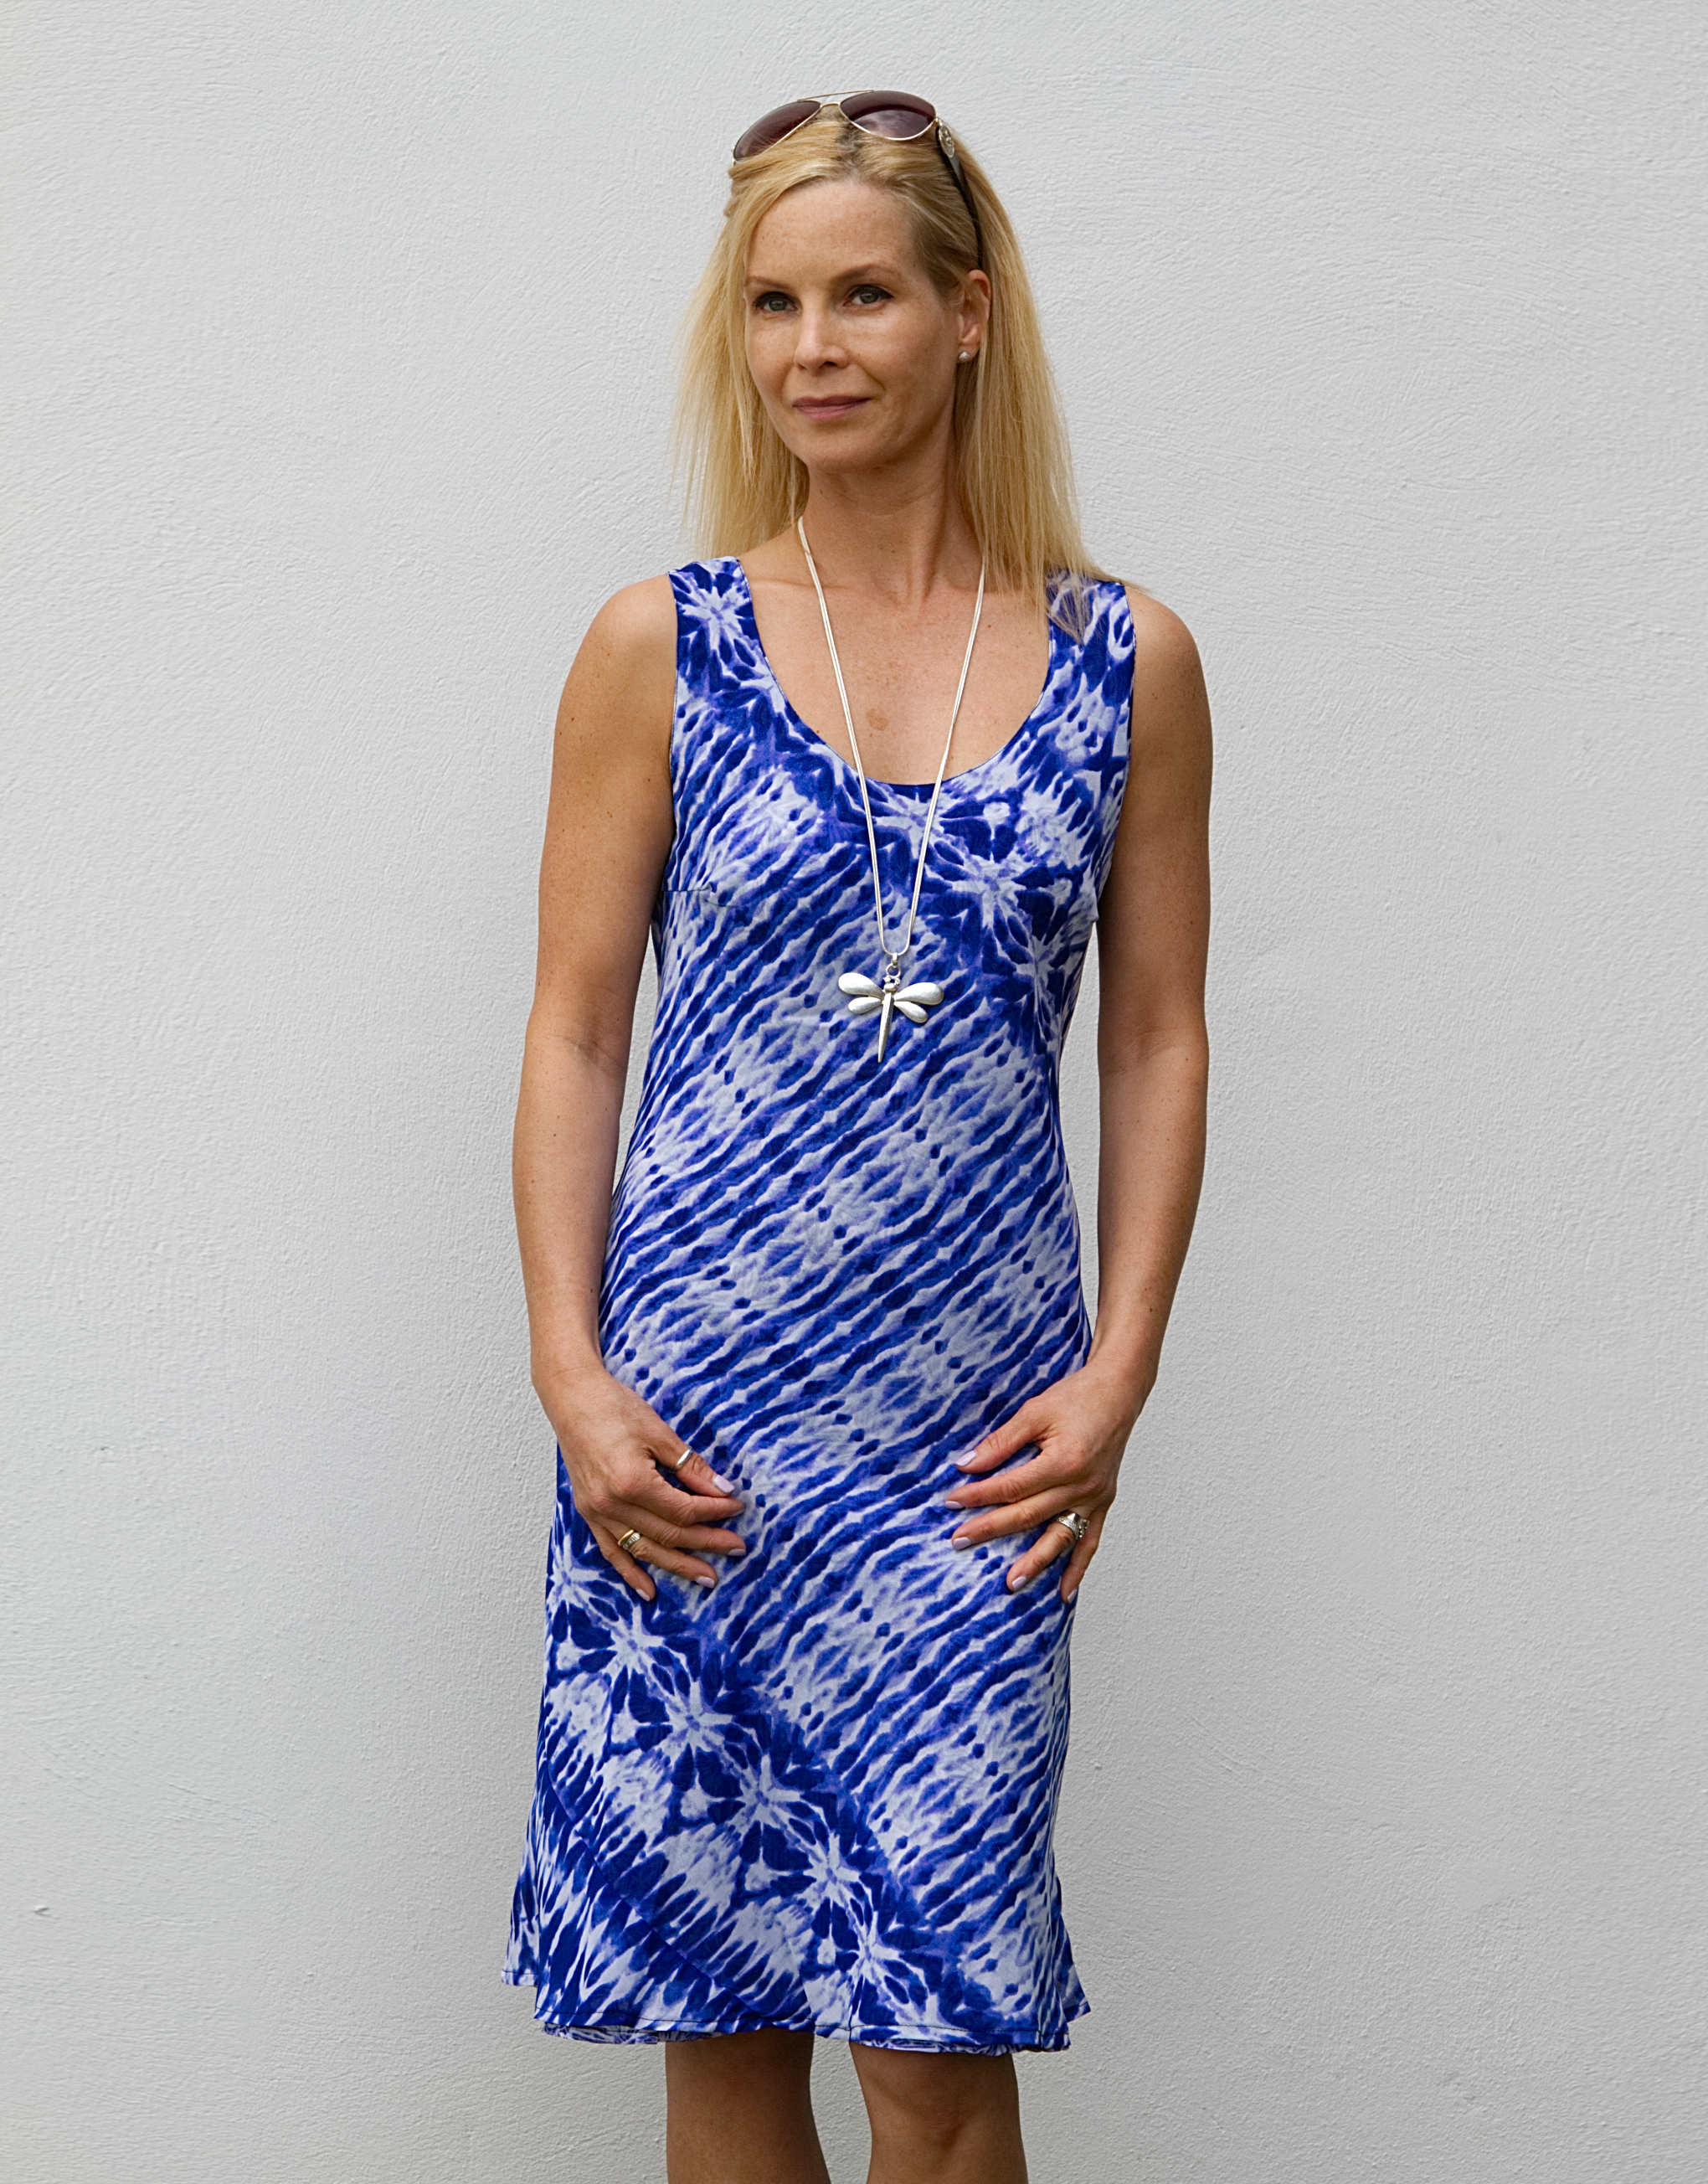 Elizabeth Scott 2 in 1 Blue Reversible Dress